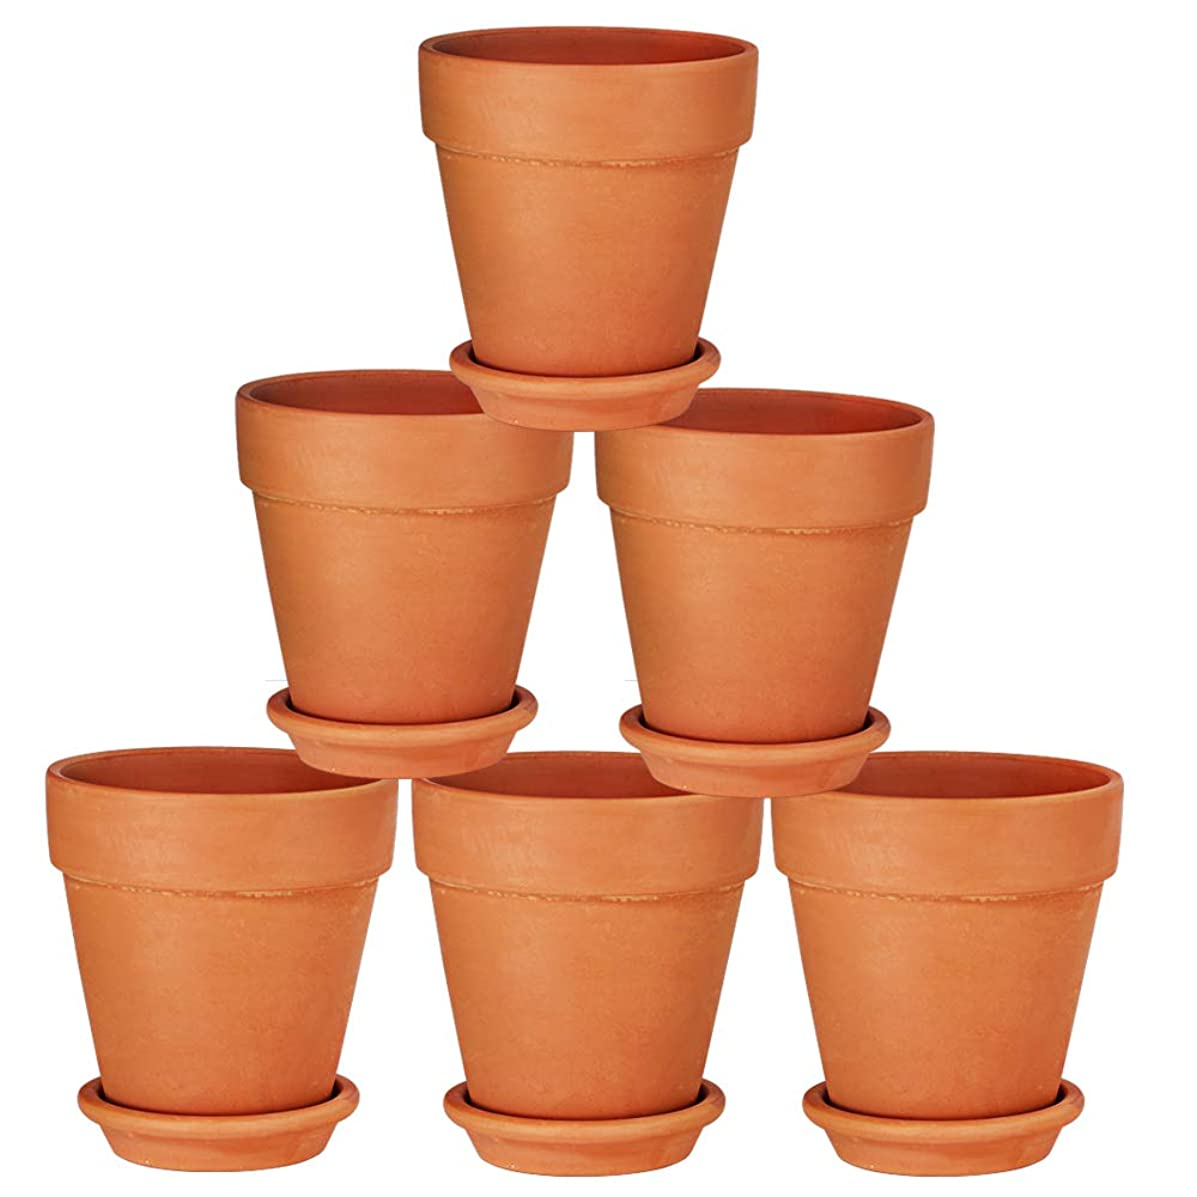 Terra Cotta Pots with Saucer- 6-Pack Large Terracotta Pot Clay Pots 5'' Clay Ceramic Pottery Planter Cactus Flower Pots Succulent Pot Drainage Hole- Great for Plants,Crafts,Wedding Favor (5 inches)